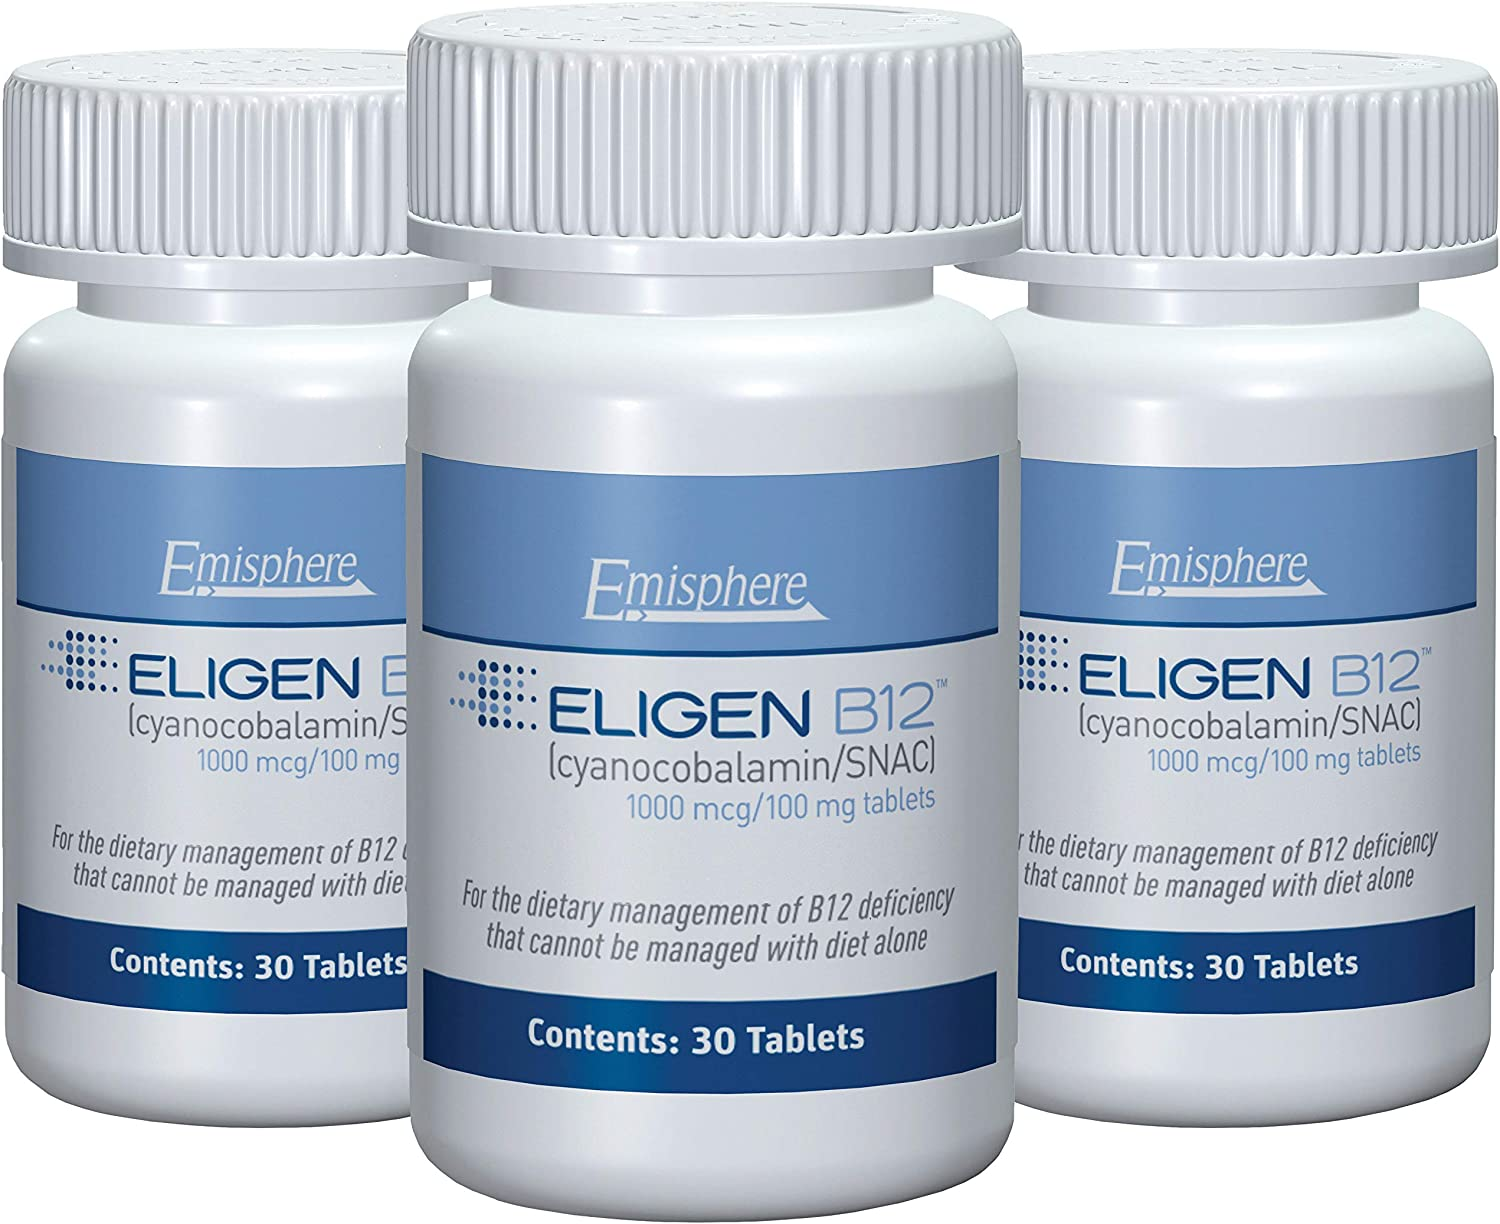 Eligen B12 Vitamin B-12 Tablets - 1000 mcg - Easy to Use - Clinically Proven to Be As Effective as Injections & Boosts Energy Level & Overall Health (3 Month Supply, 90 Count, Small Tablets)